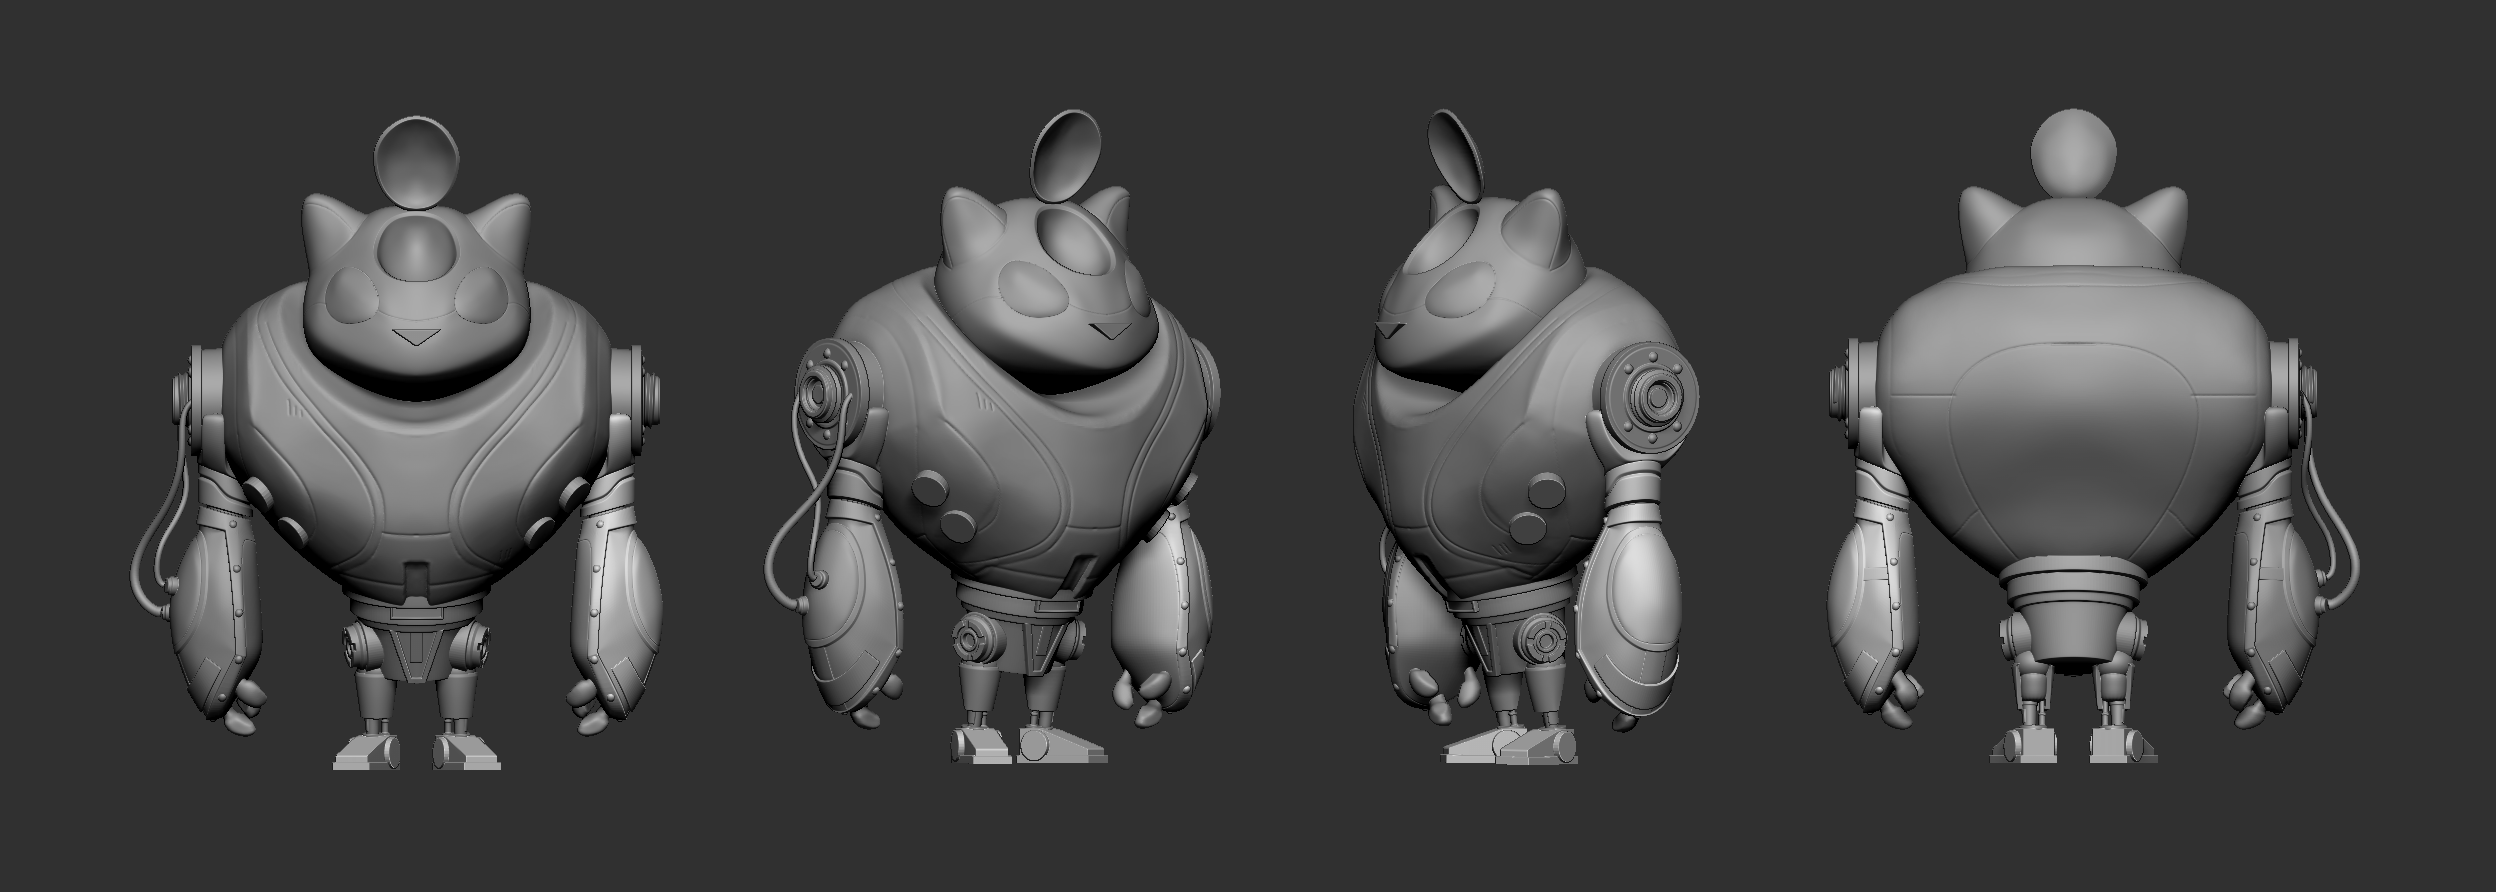 Modeling out some of the sketched ideas.